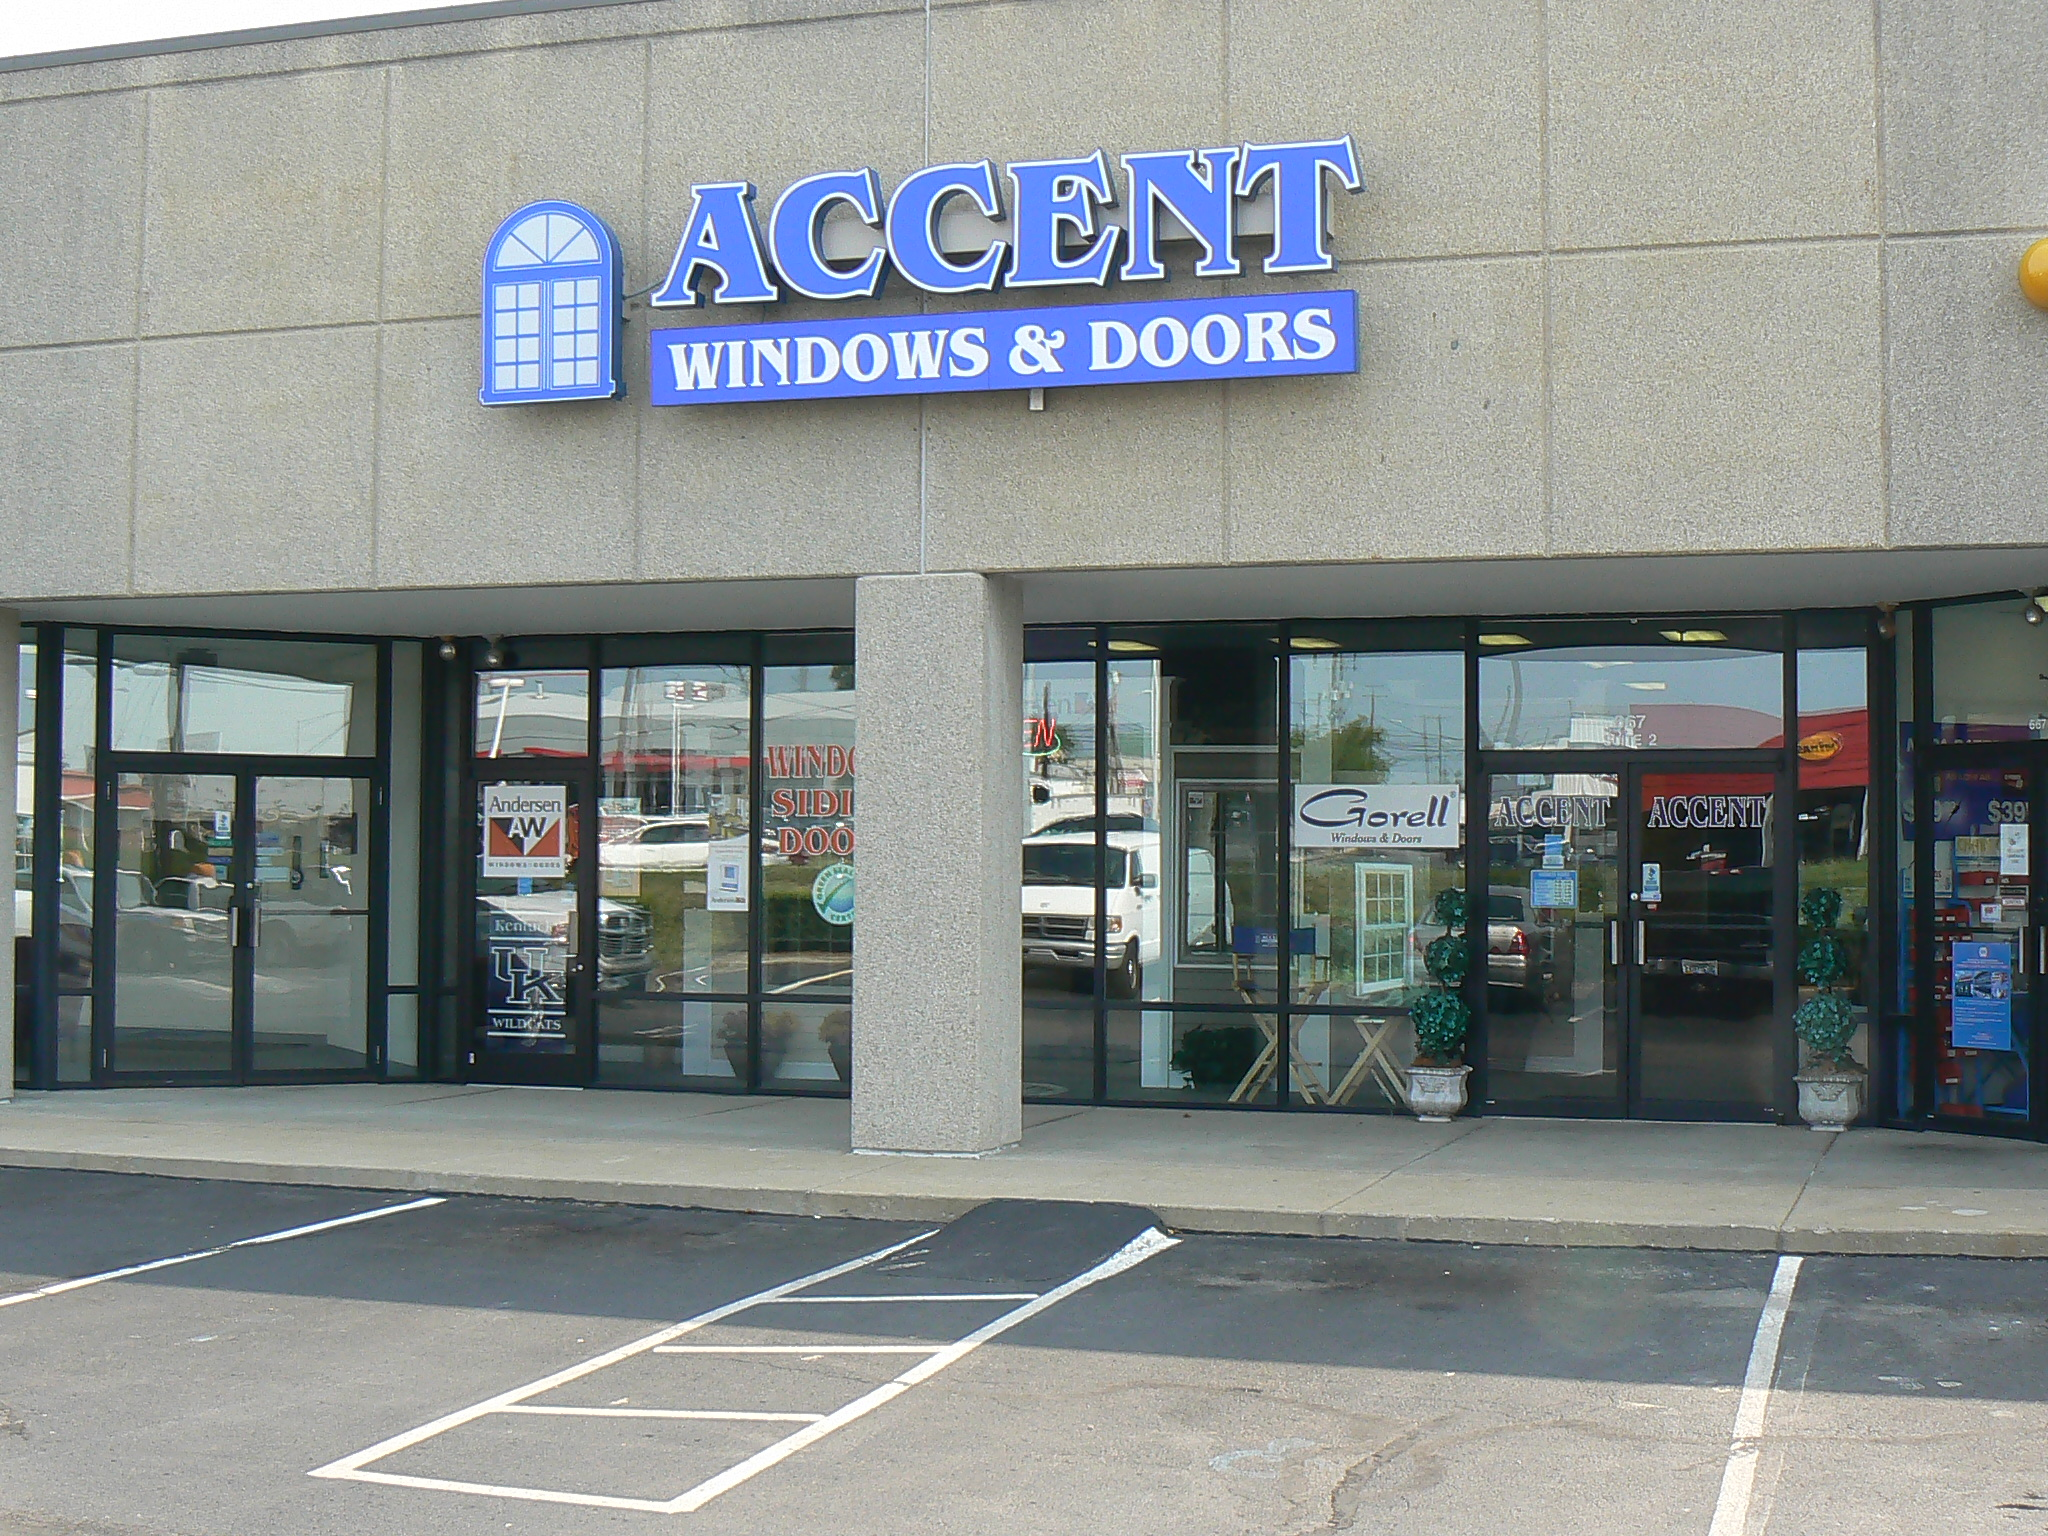 Accent Windows And Doors 667 E New Circle Rd Ste 2 Lexington Ky 40505 Yp